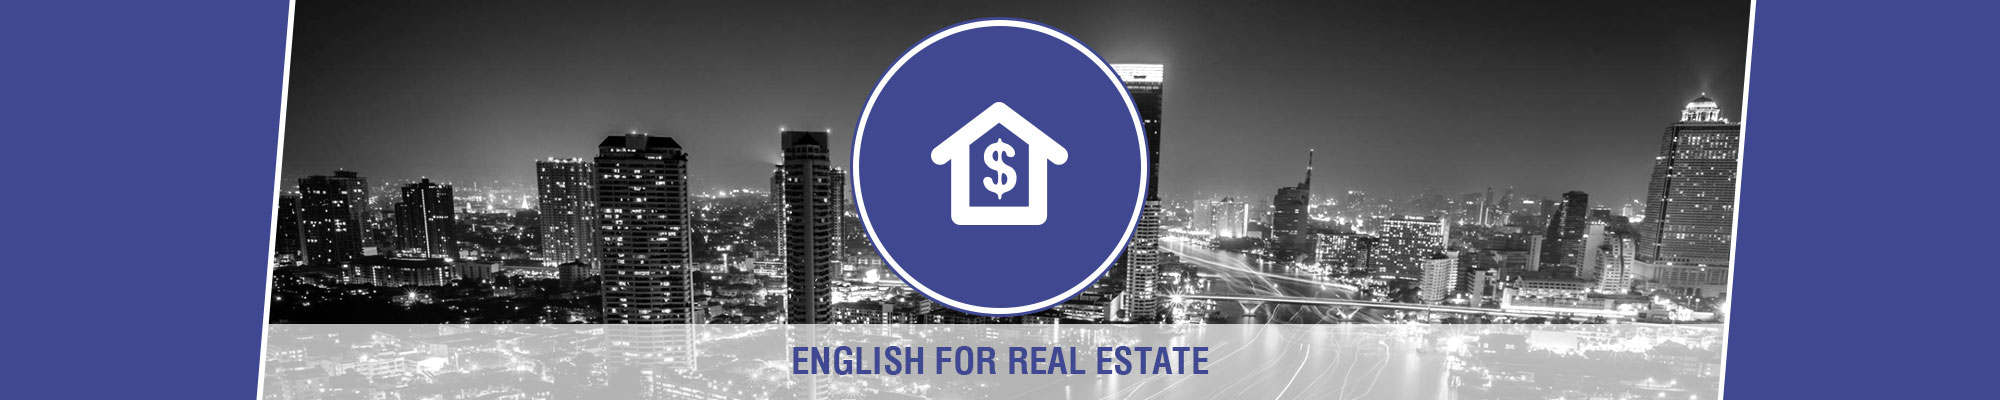 Anglokom Corporate Language Training Bangkok - English for Real-Estate Banner